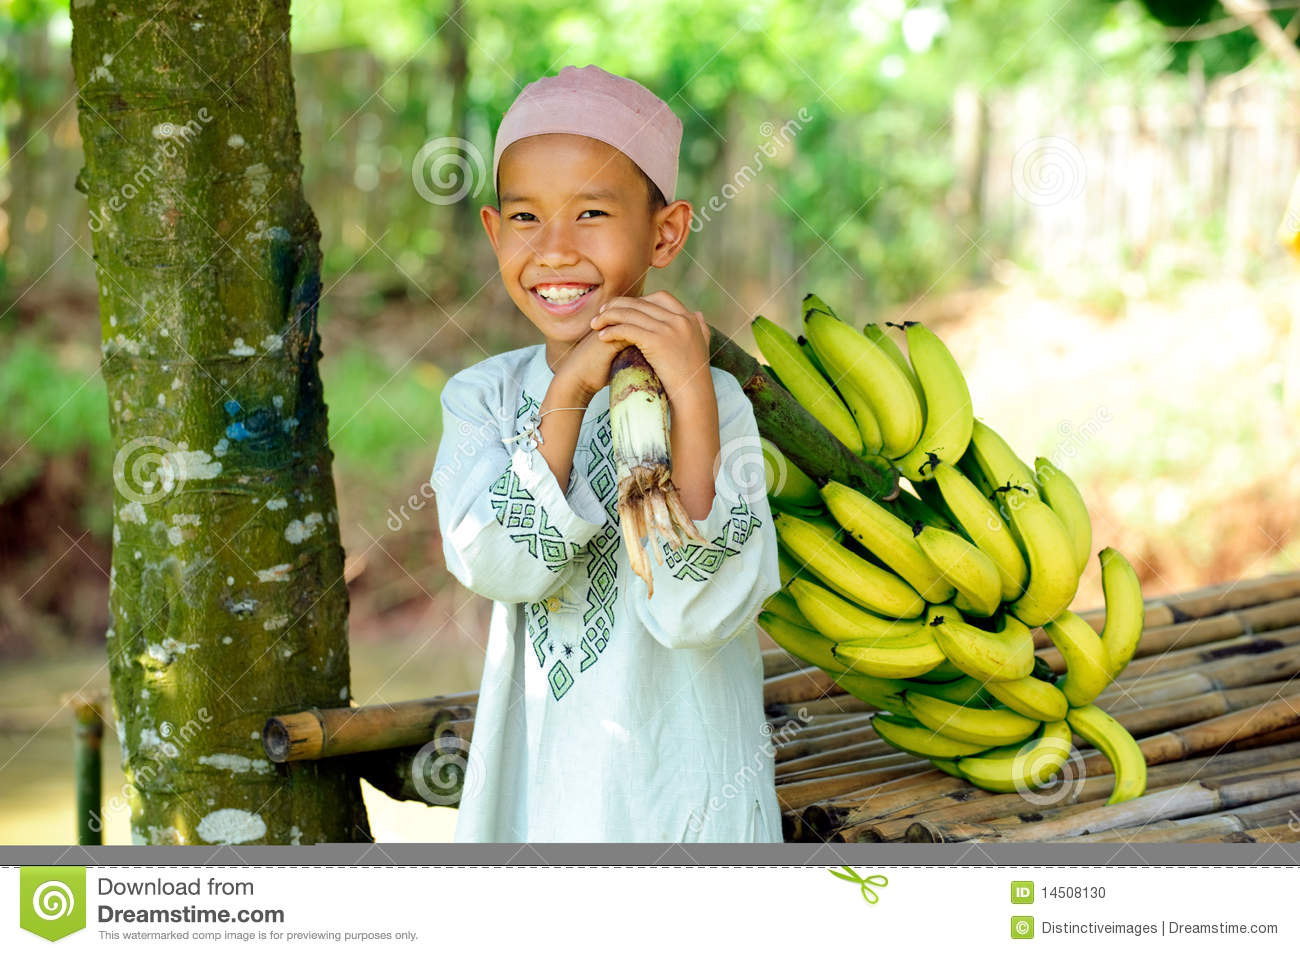 Child with Bananas